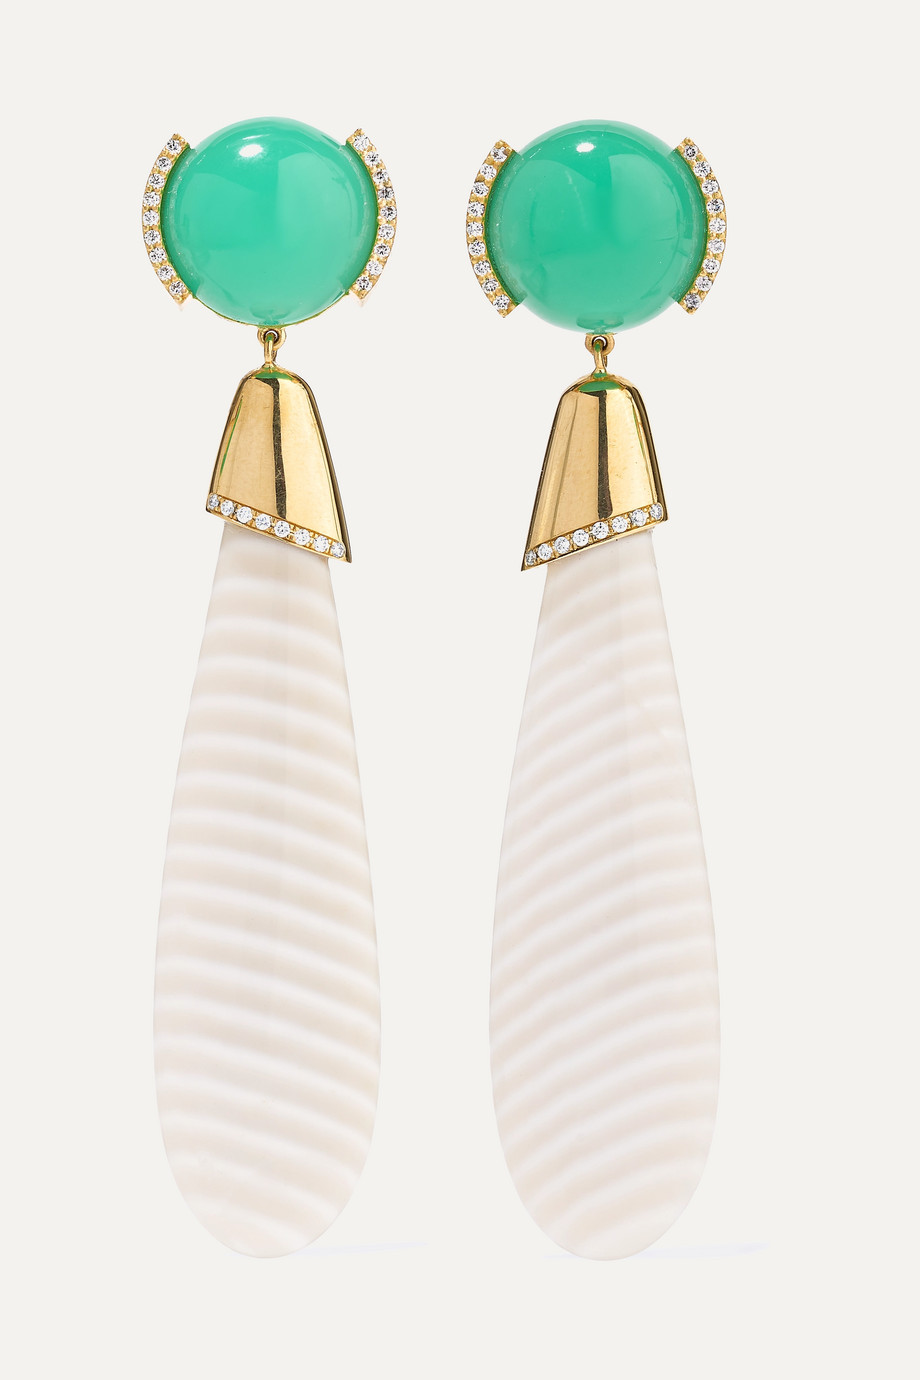 Guita M 18-karat gold multi-stone earrings